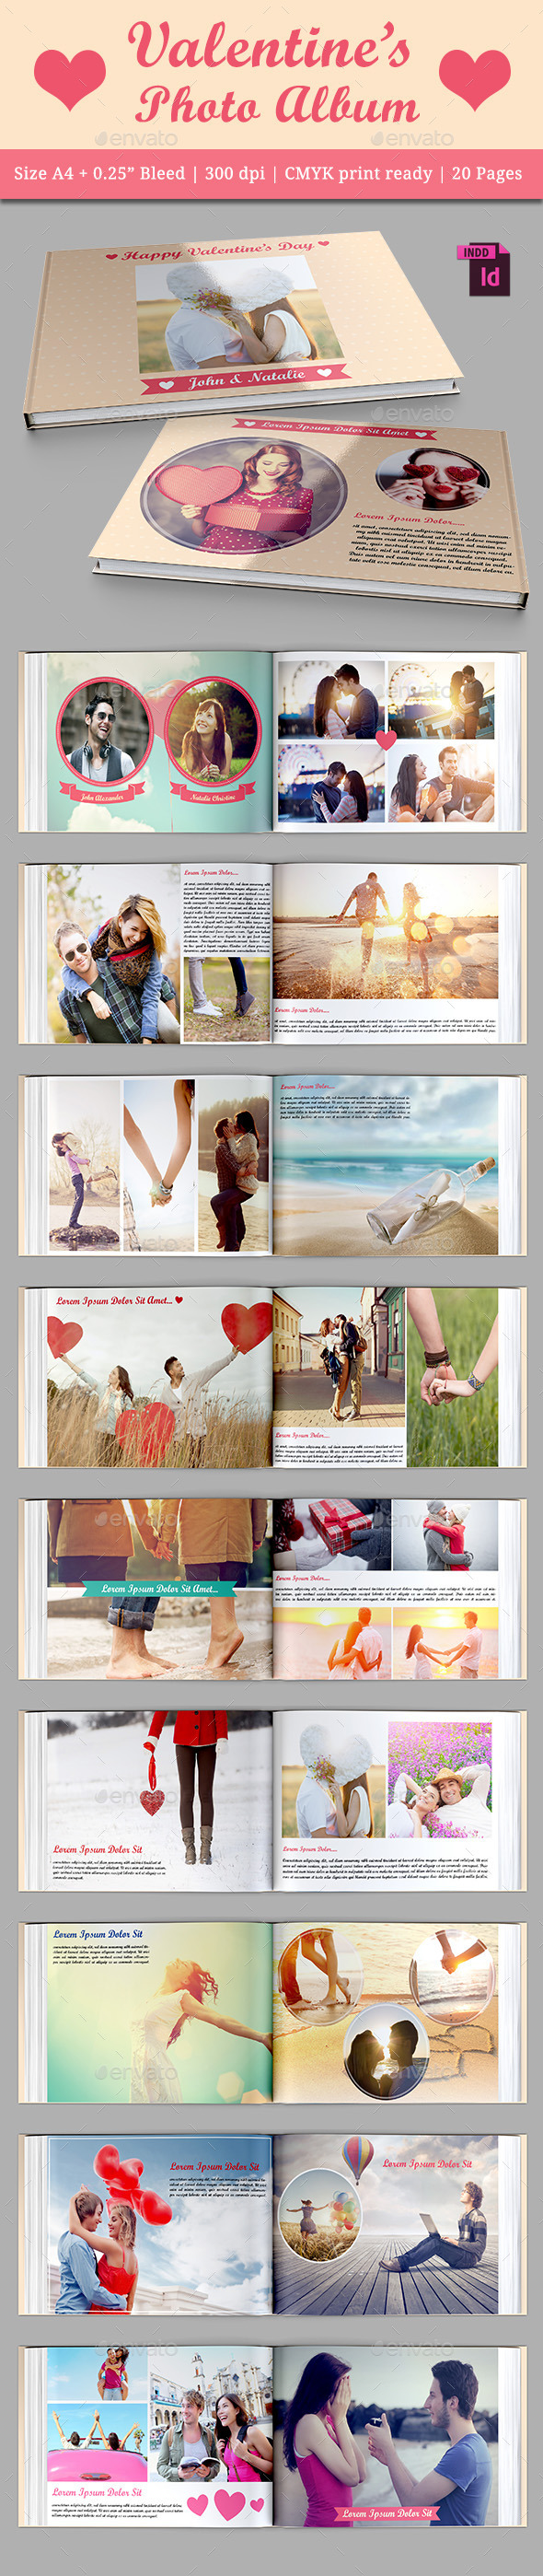 Valentine's Photo Album - Photo Albums Print Templates